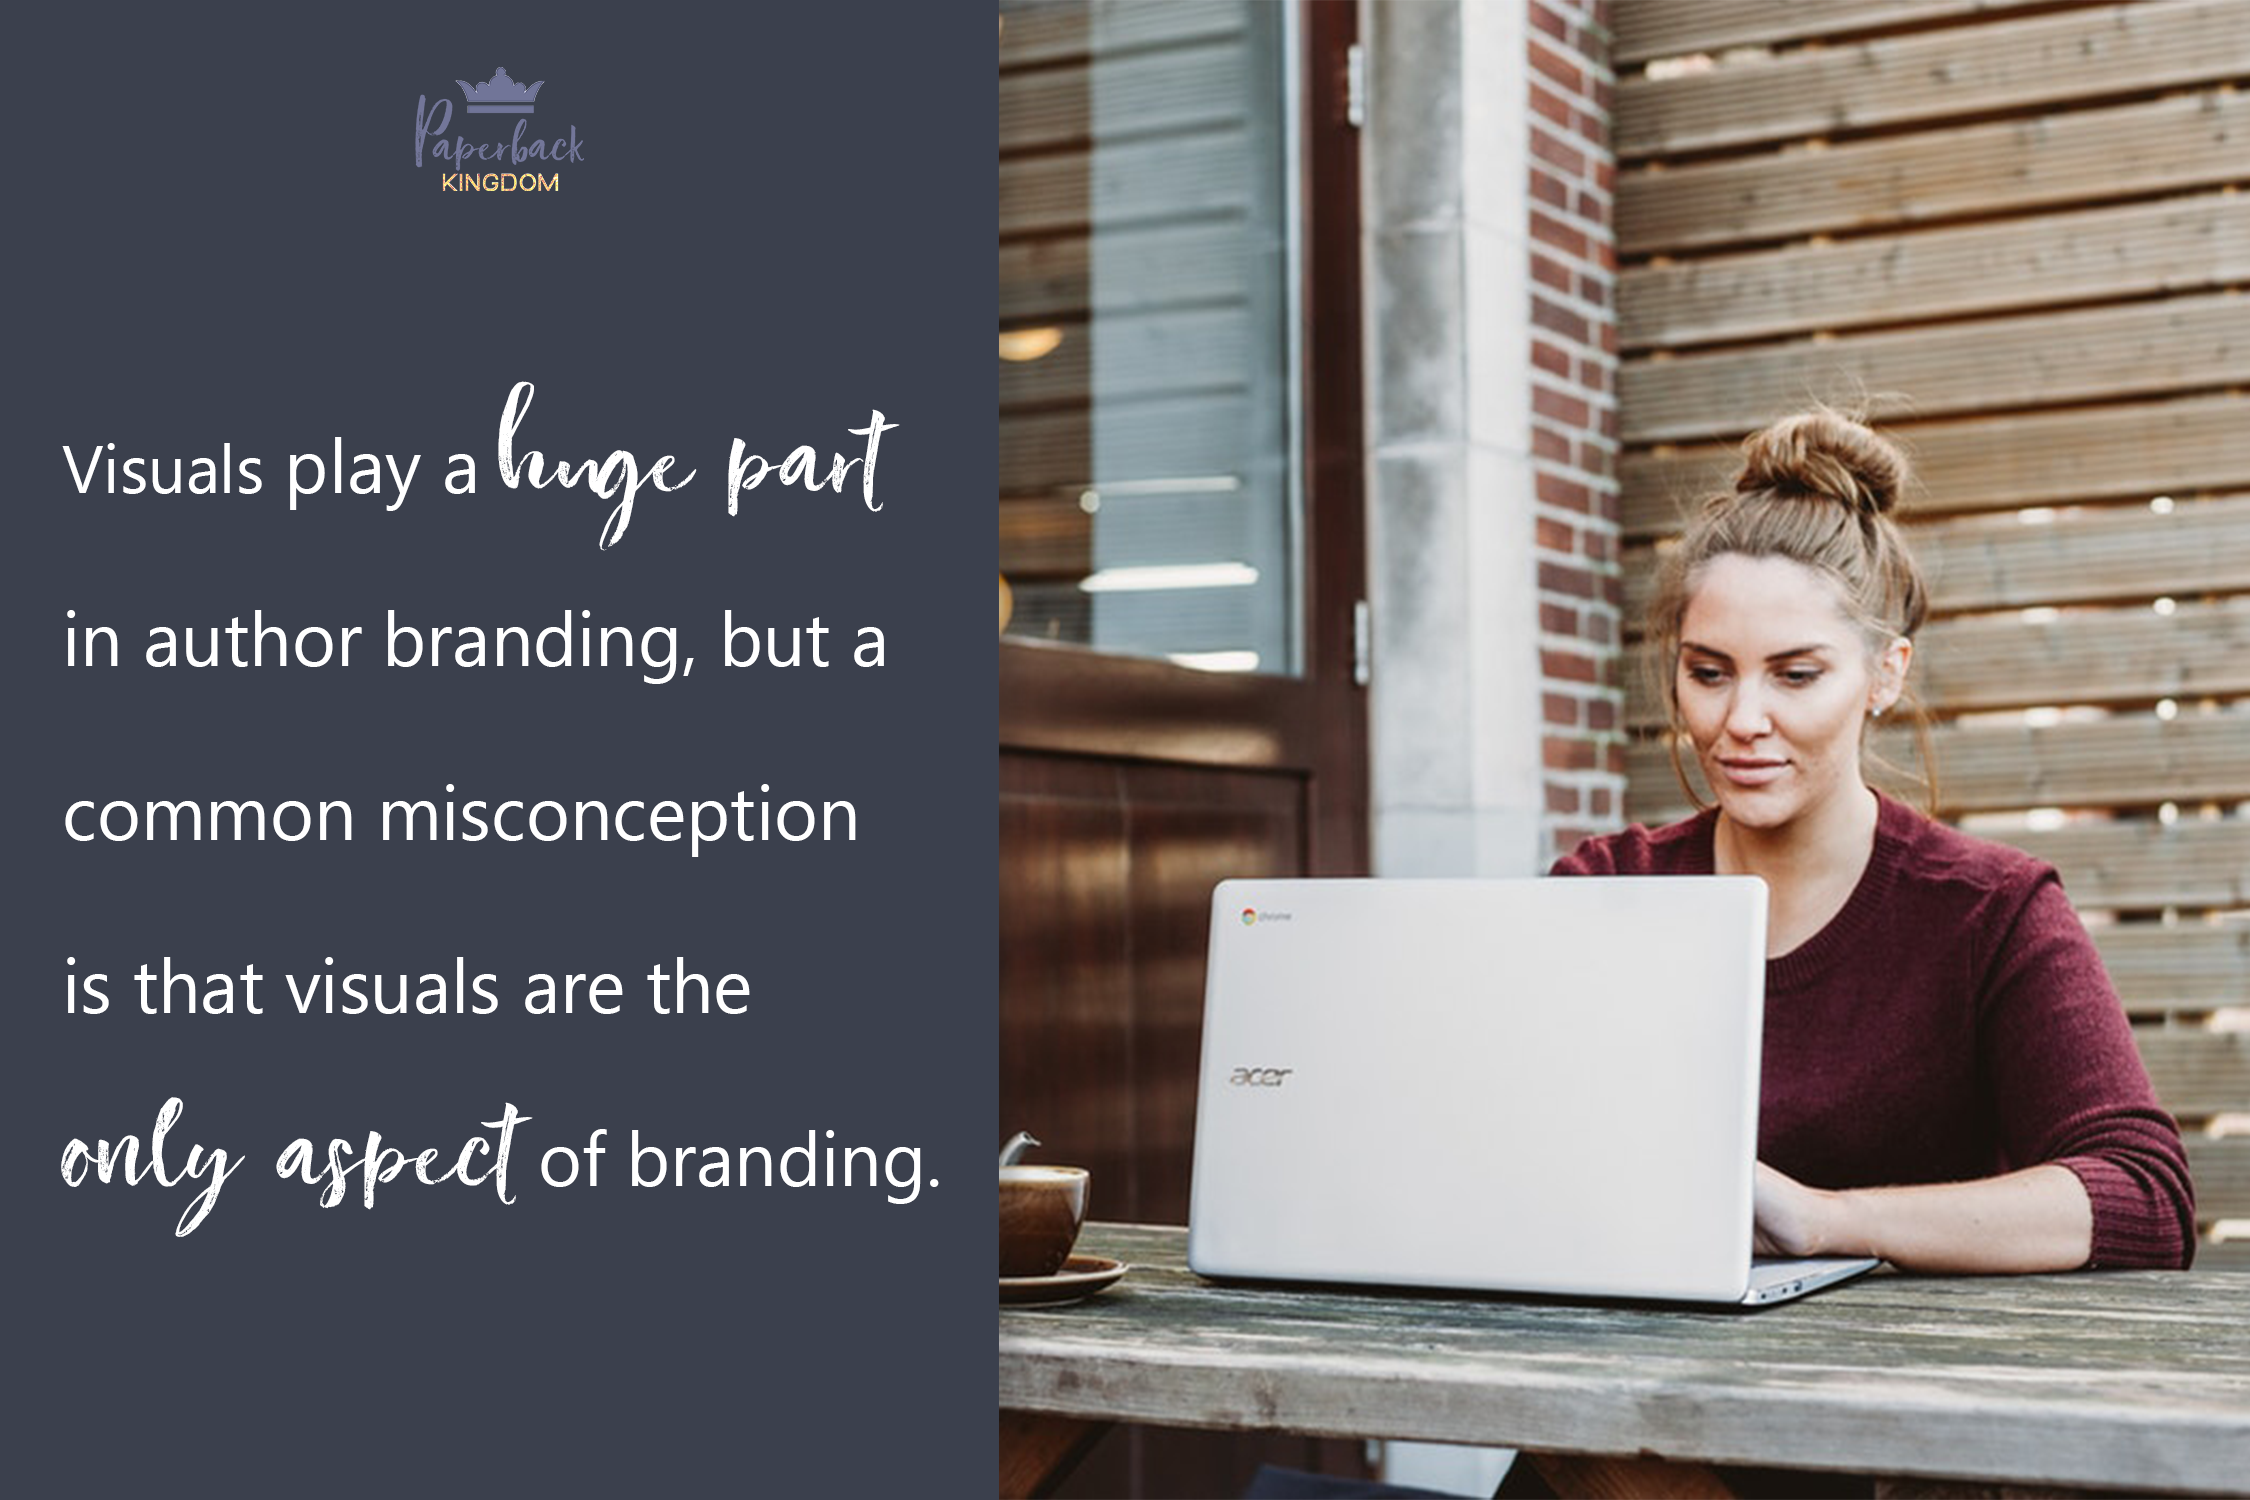 Visuals play a huge part  in author branding, but a common misconception  is that visuals are the only aspect of branding.